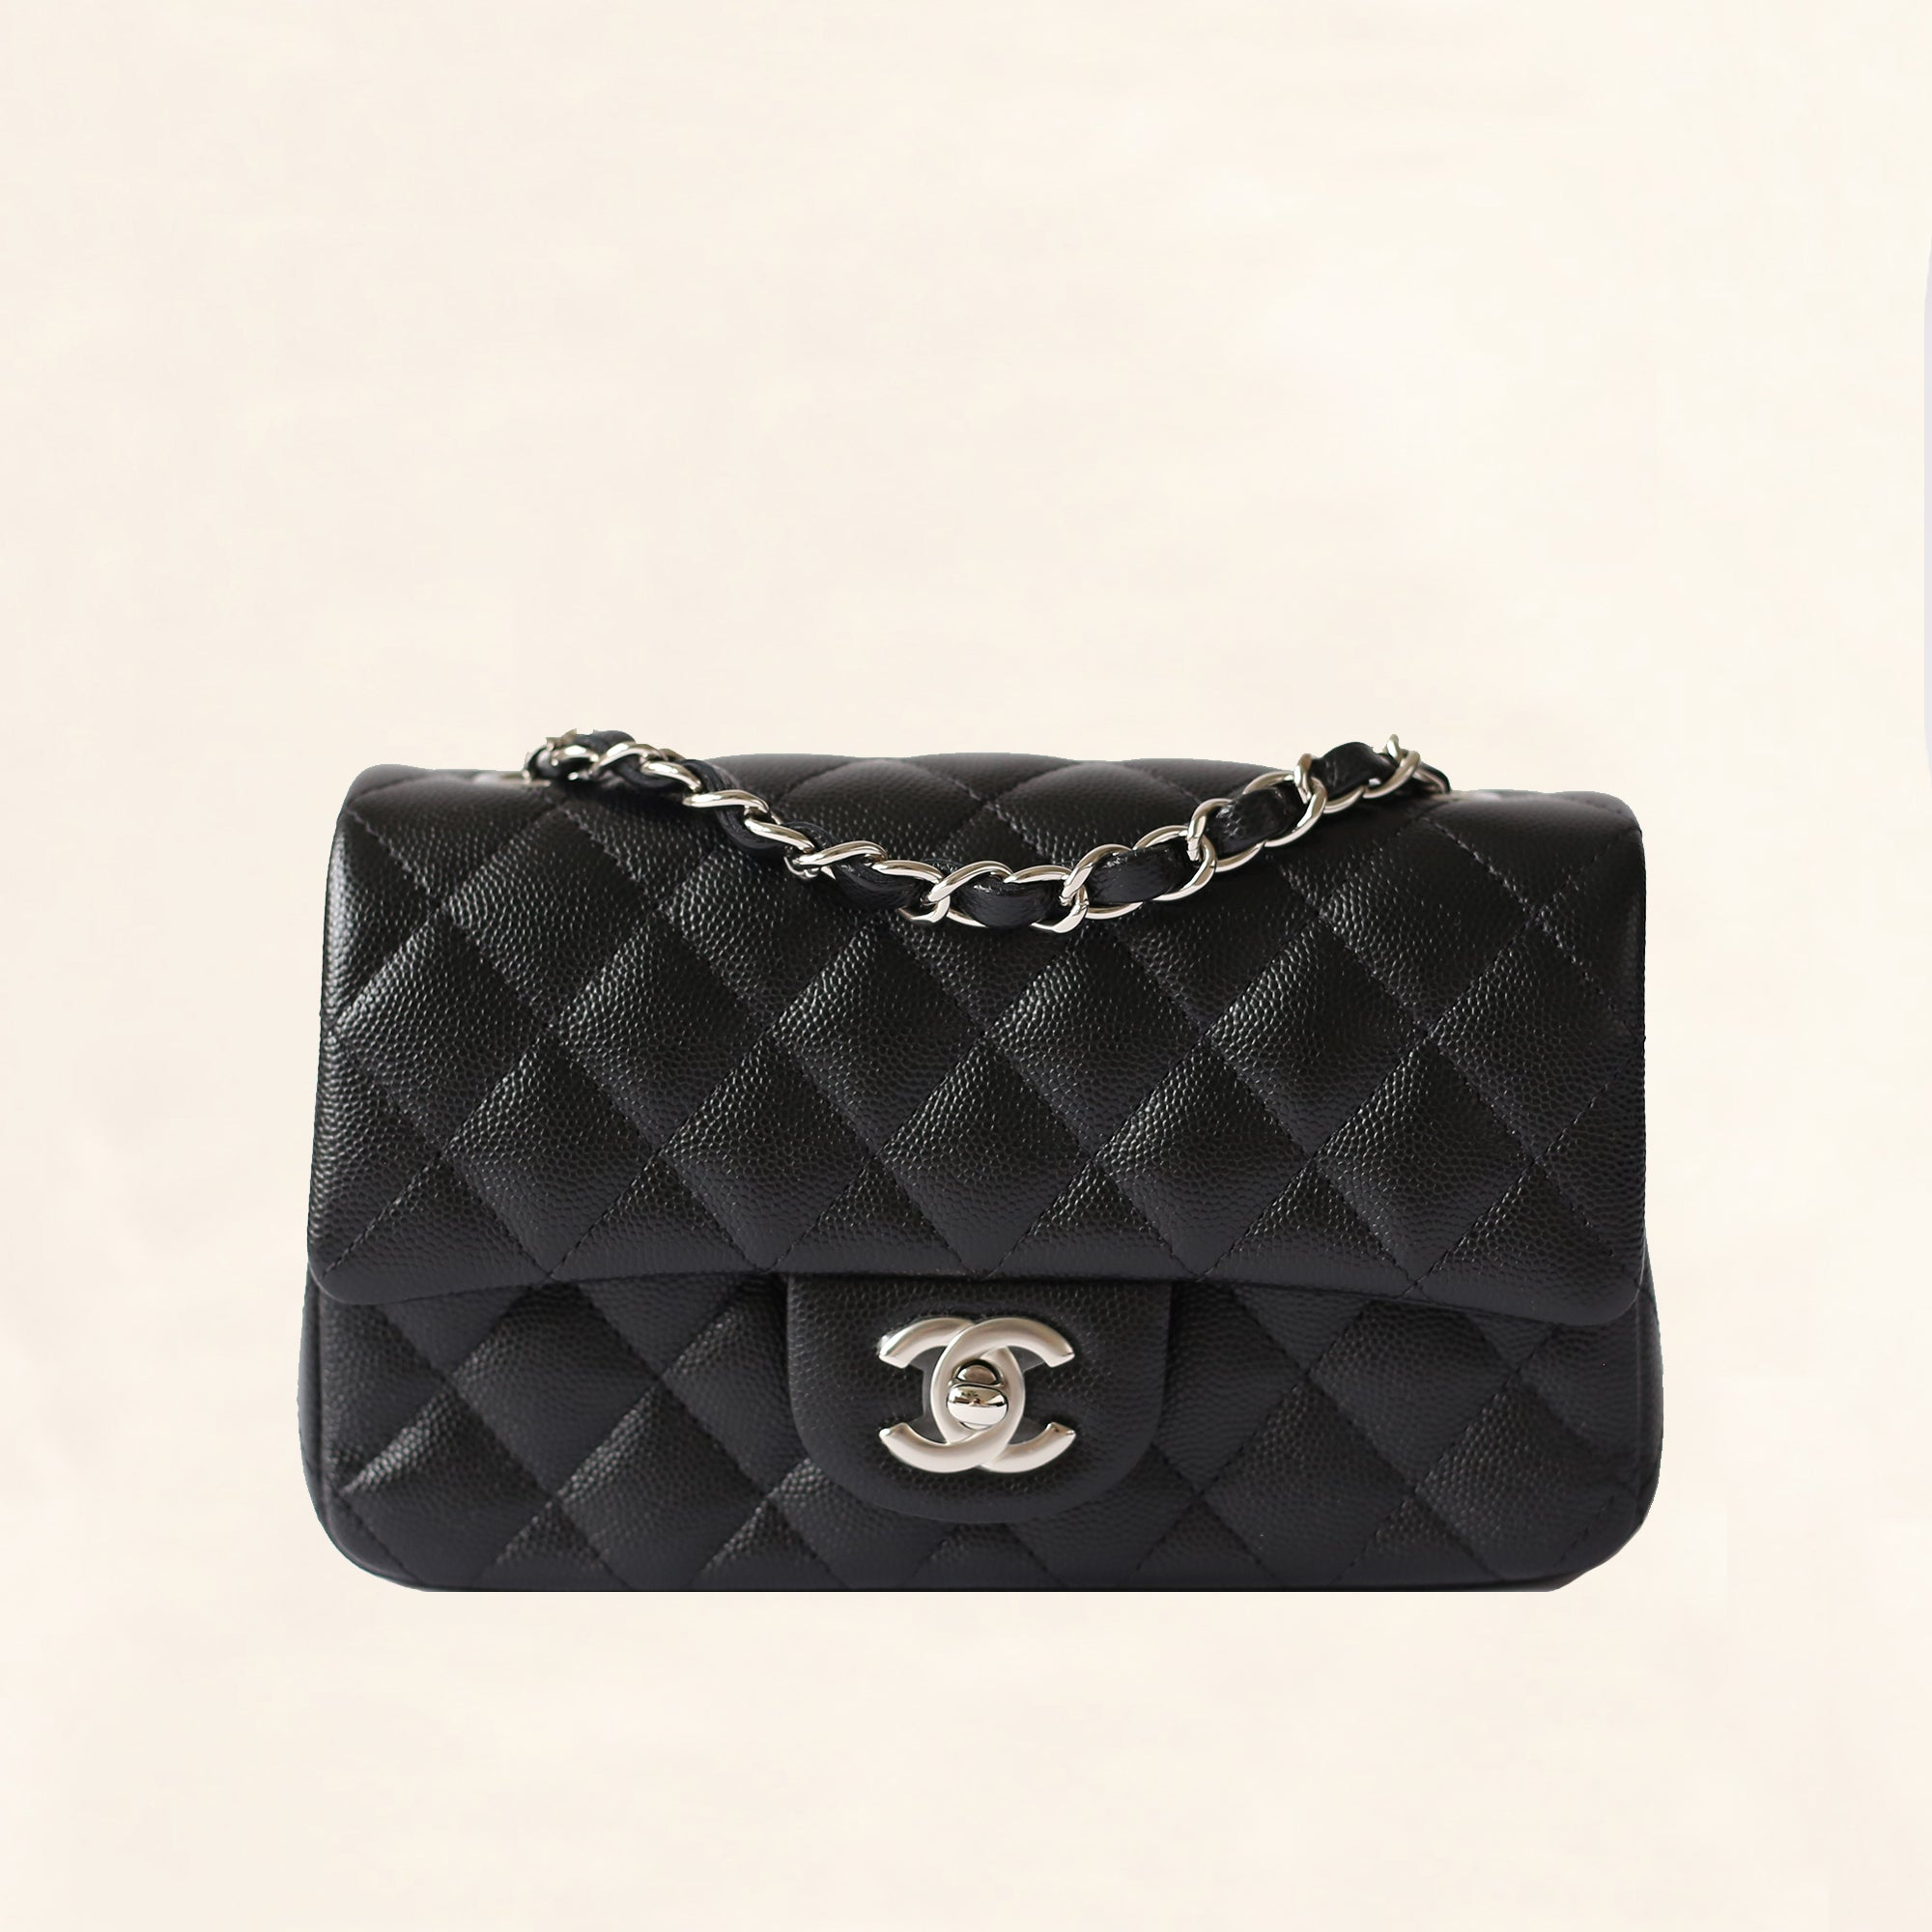 a1f21d287acc Chanel | Caviar Mini Rectangular Flap Bag | Black with Silver Hardware -  The-Collectory